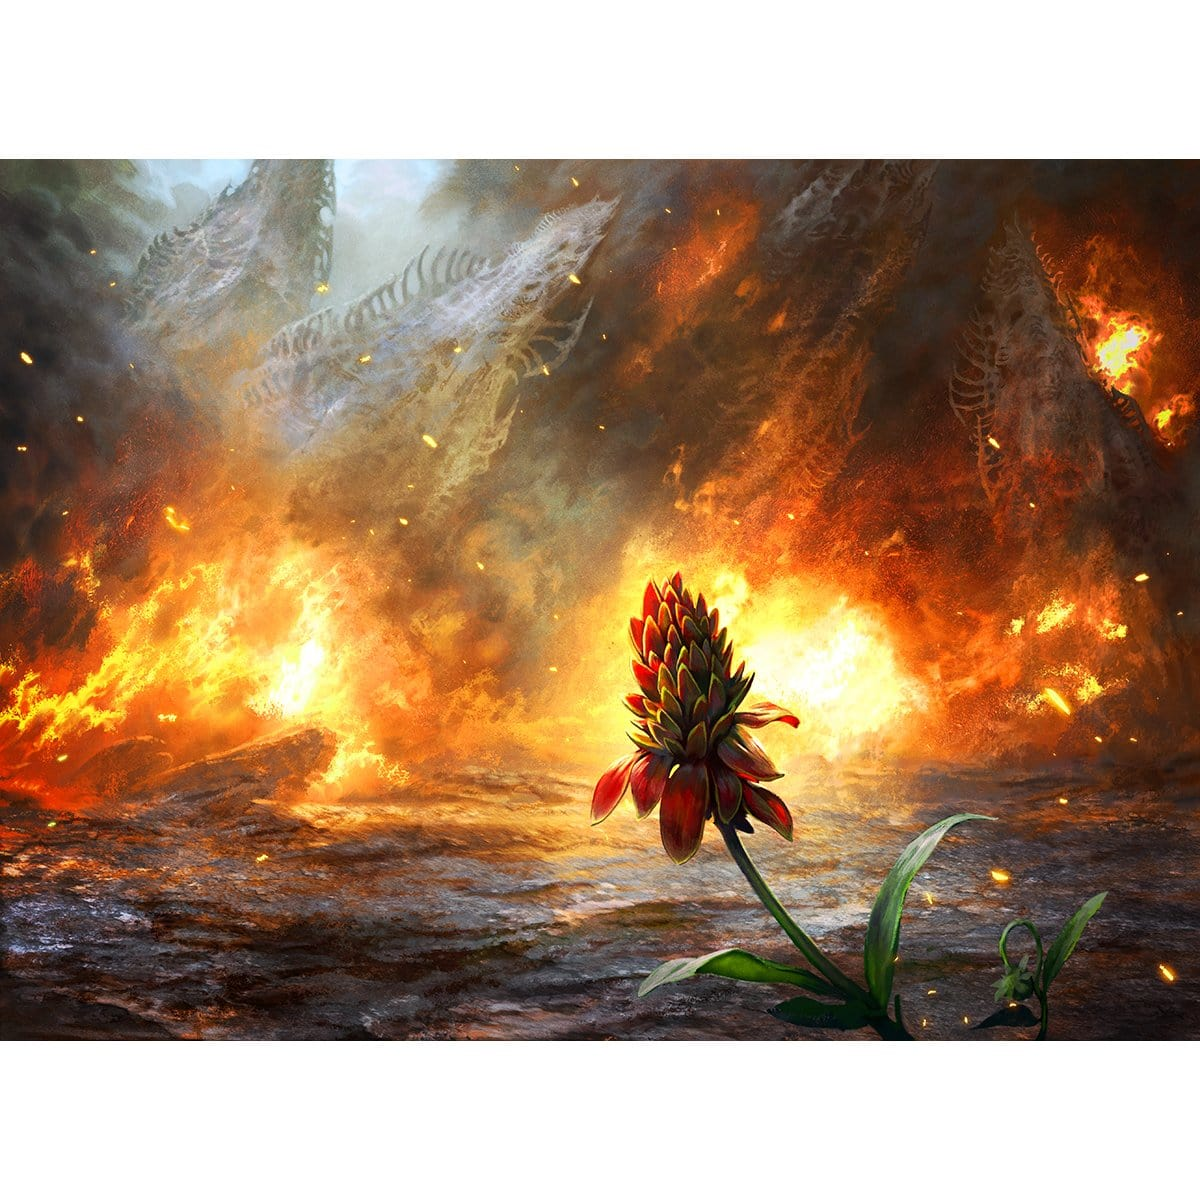 Cleansing Wildfire Print